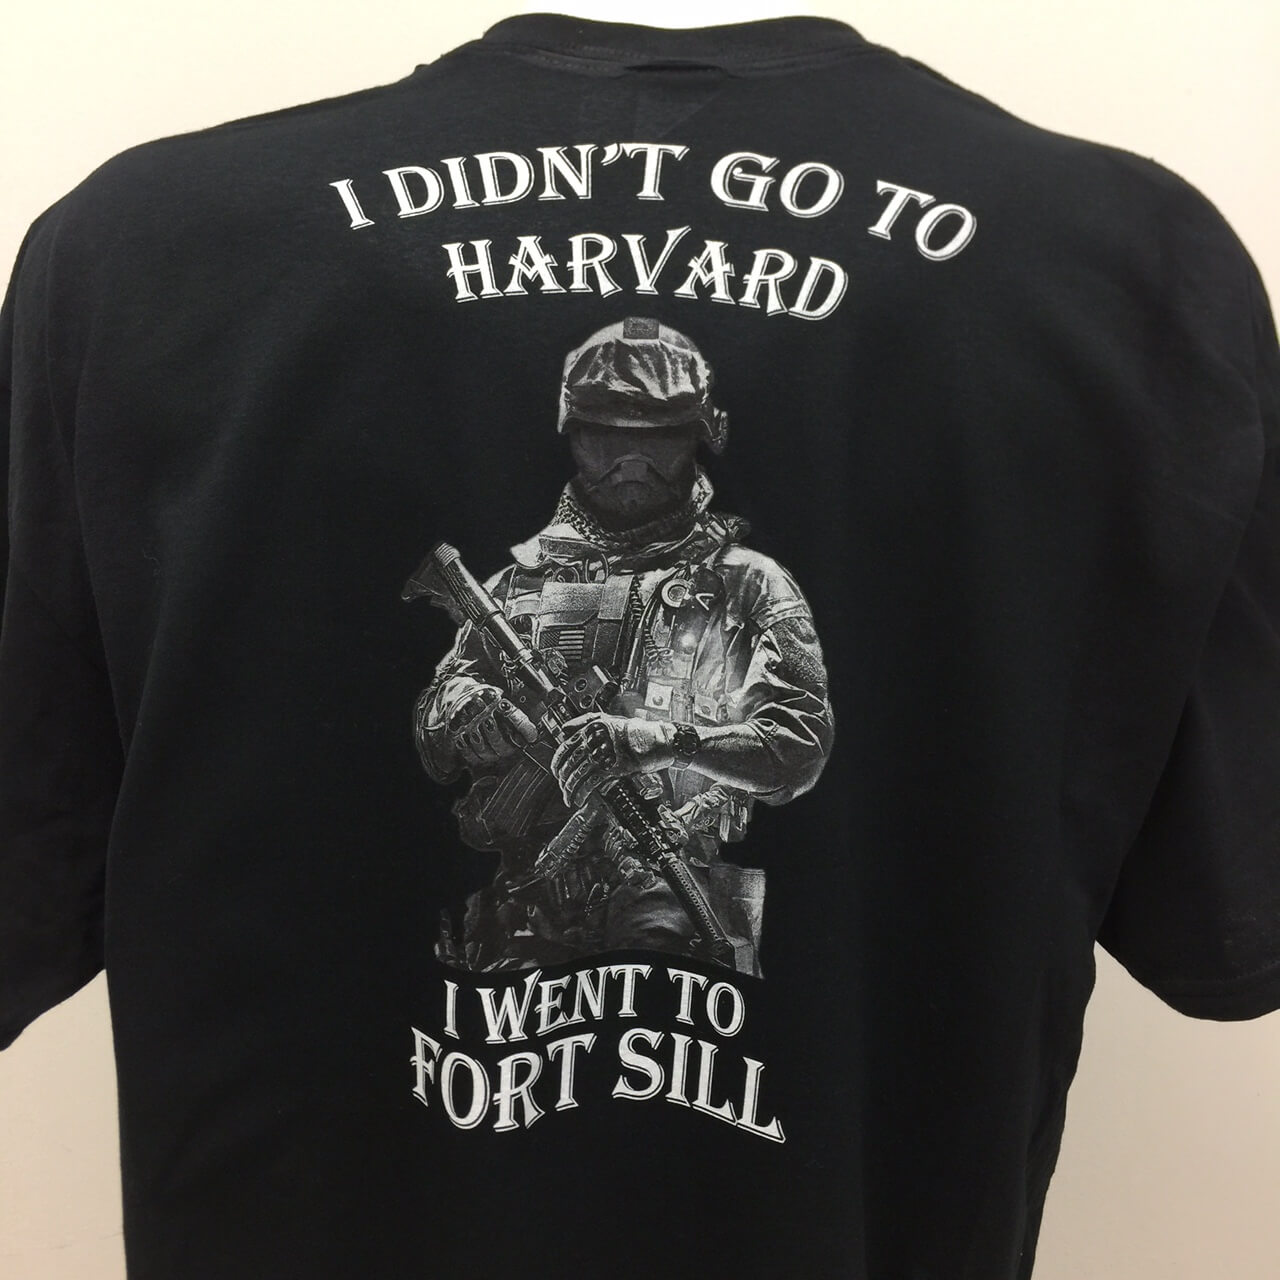 i-didn-t-go-to-harvard-i-went-to-ft.-sill-shirt.jpg